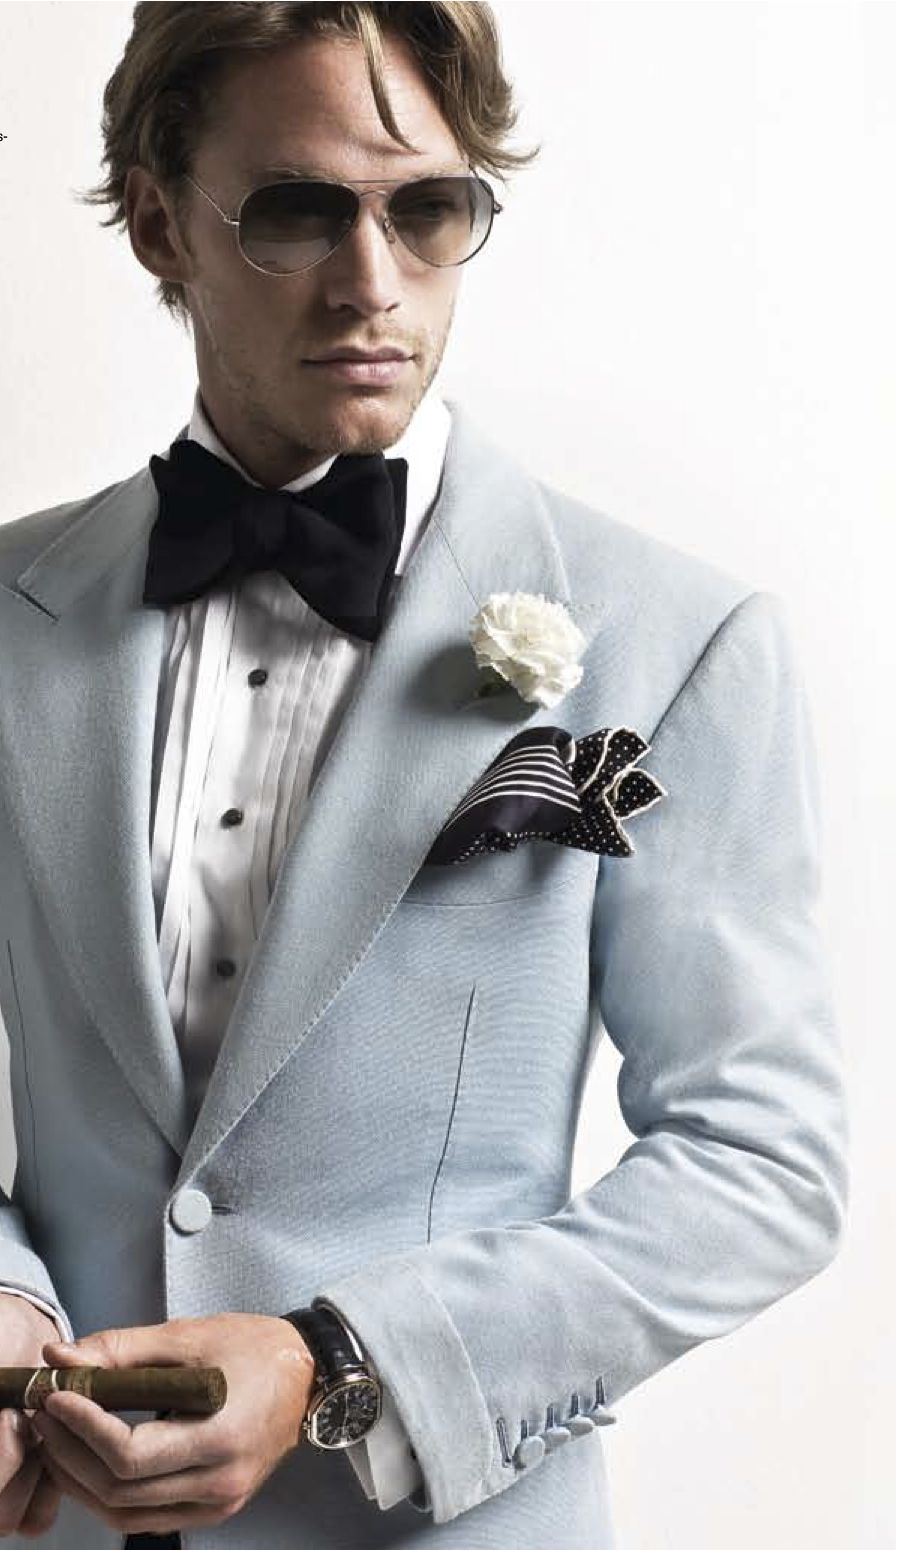 Sartorially Wasted - A Gentlemans Guide To Style: July 2010